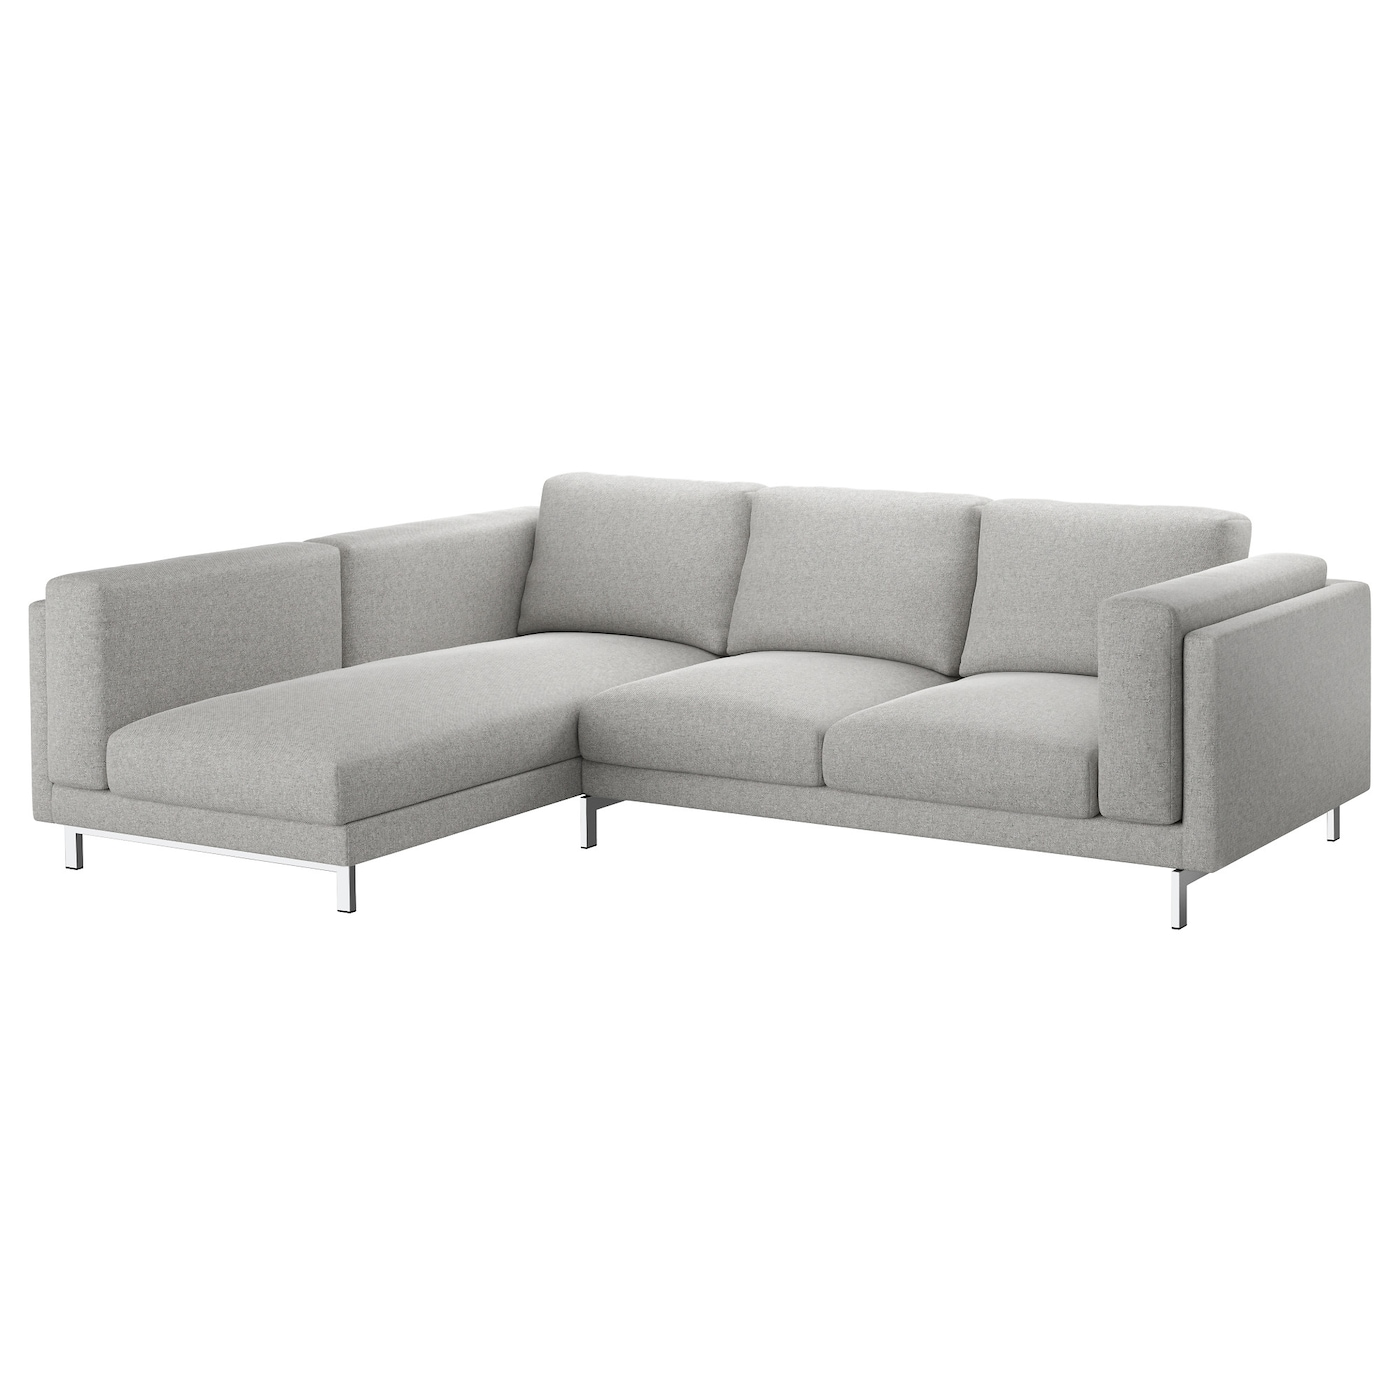 Ikea White Leather Couch Sofas: NOCKEBY Two-seat Sofa W Chaise Longue Left Tallmyra White